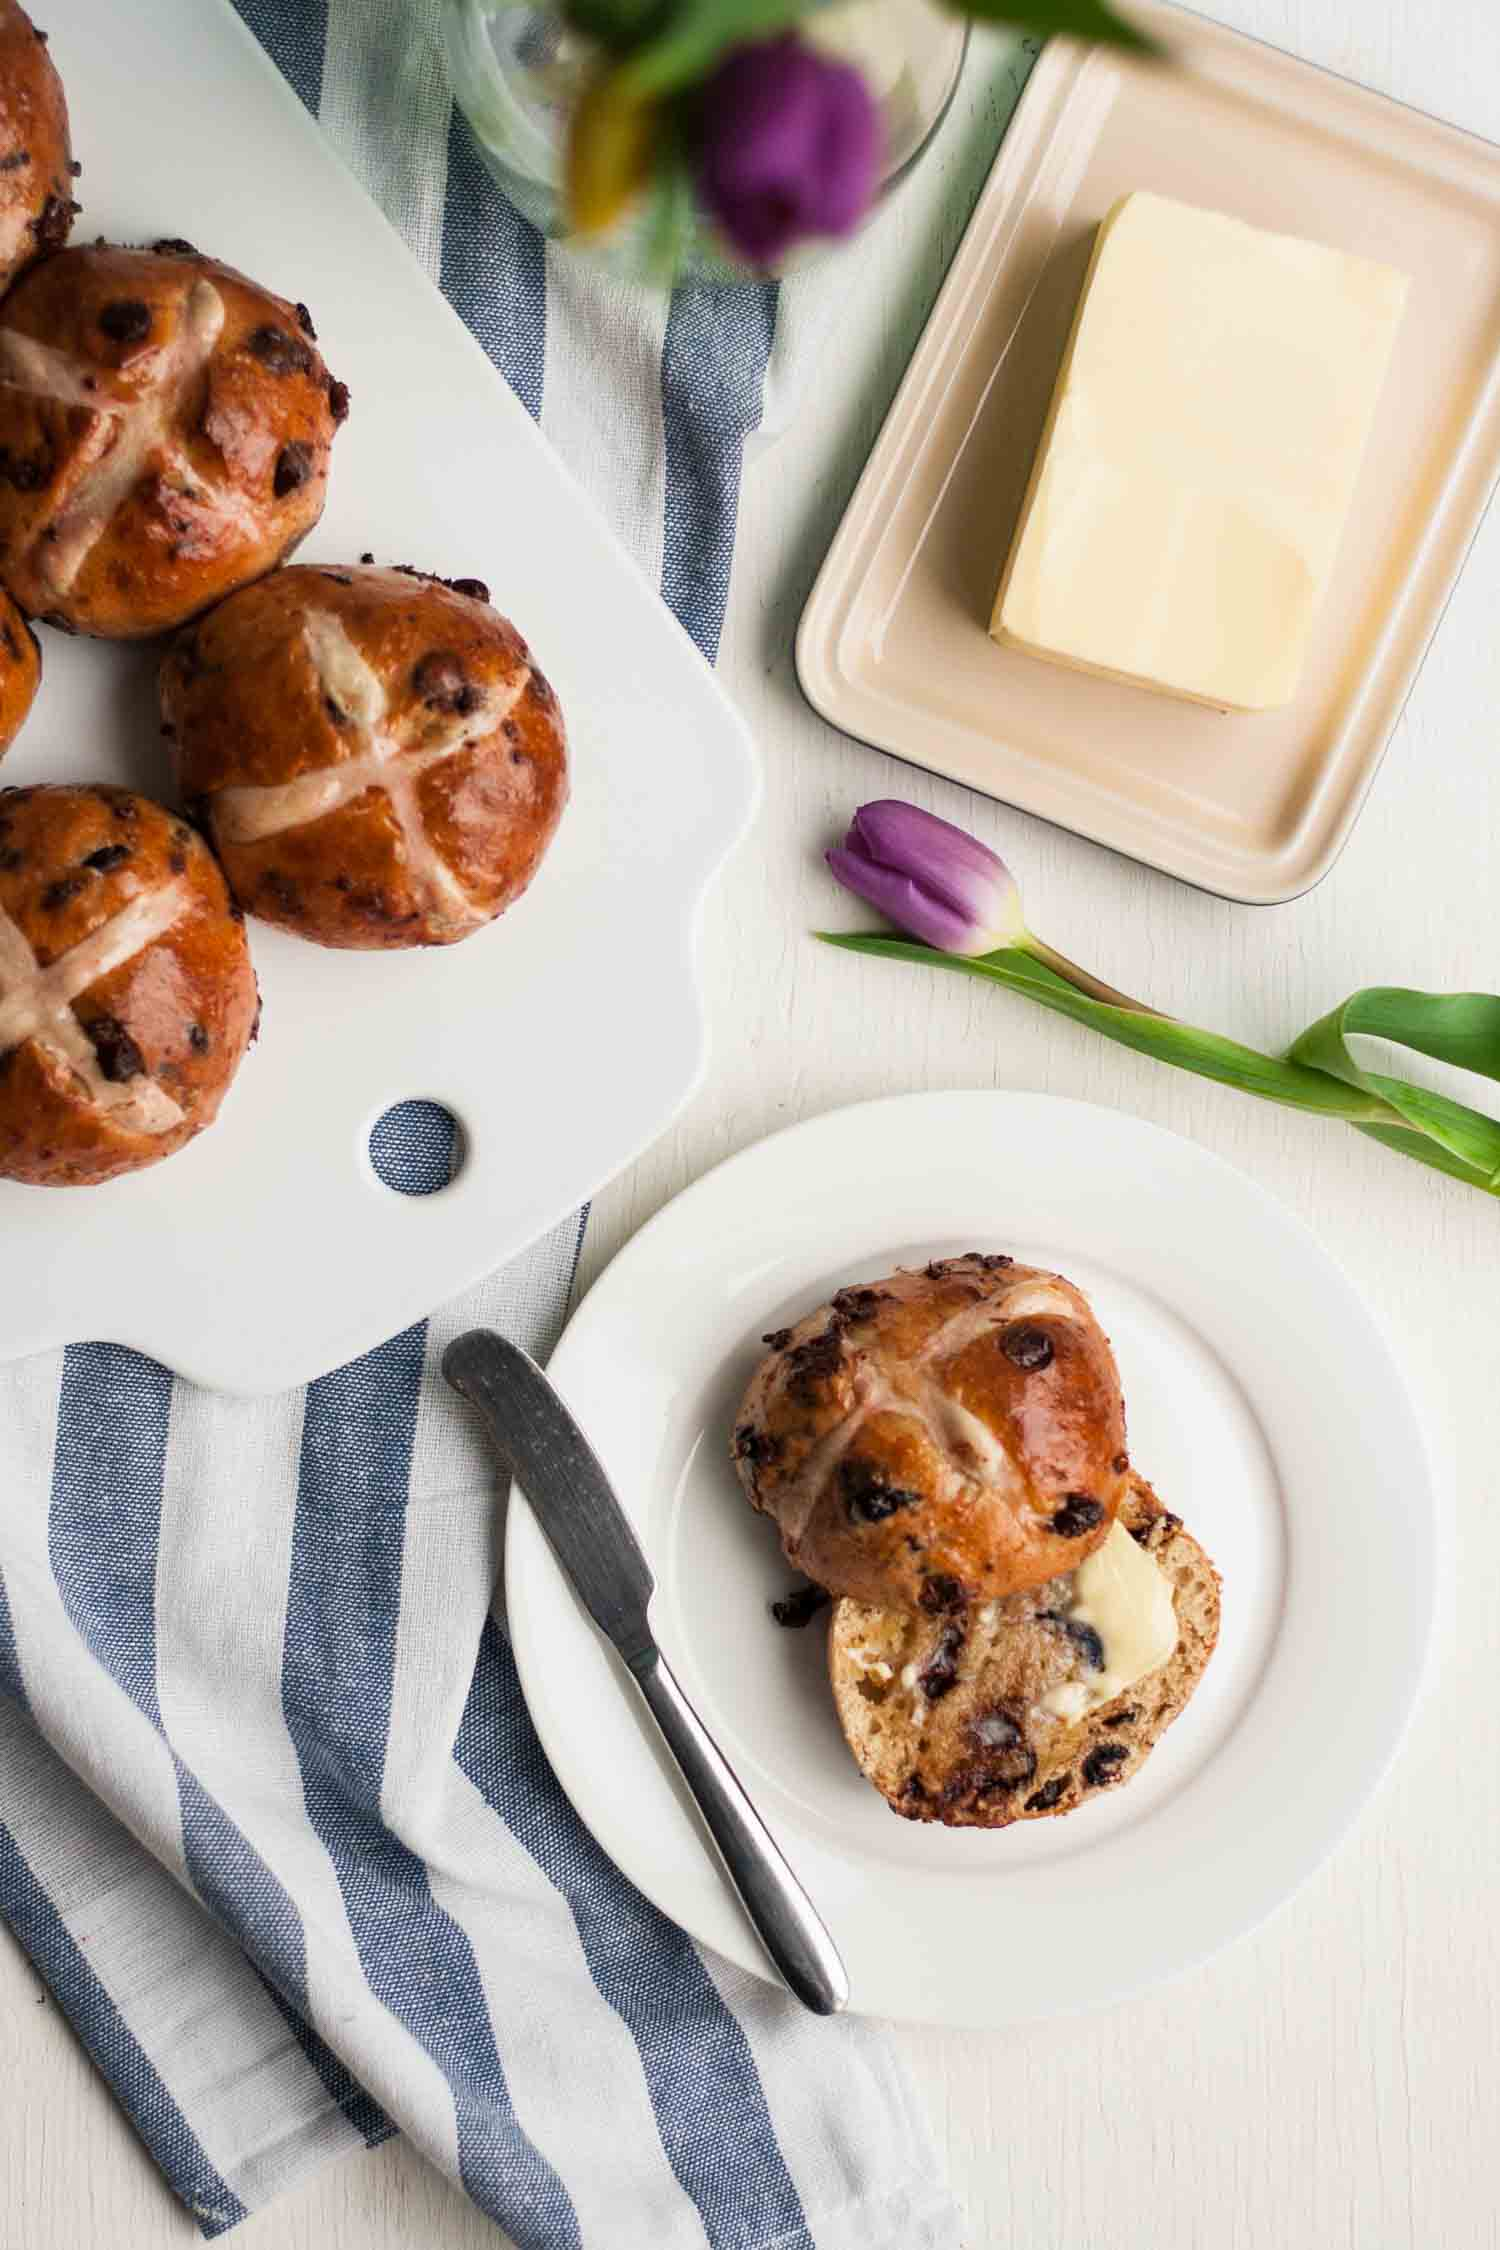 Chocolate Cherry Hot Cross Buns These Richly Spiced And Pillowy Soft Hot Cross Buns Are